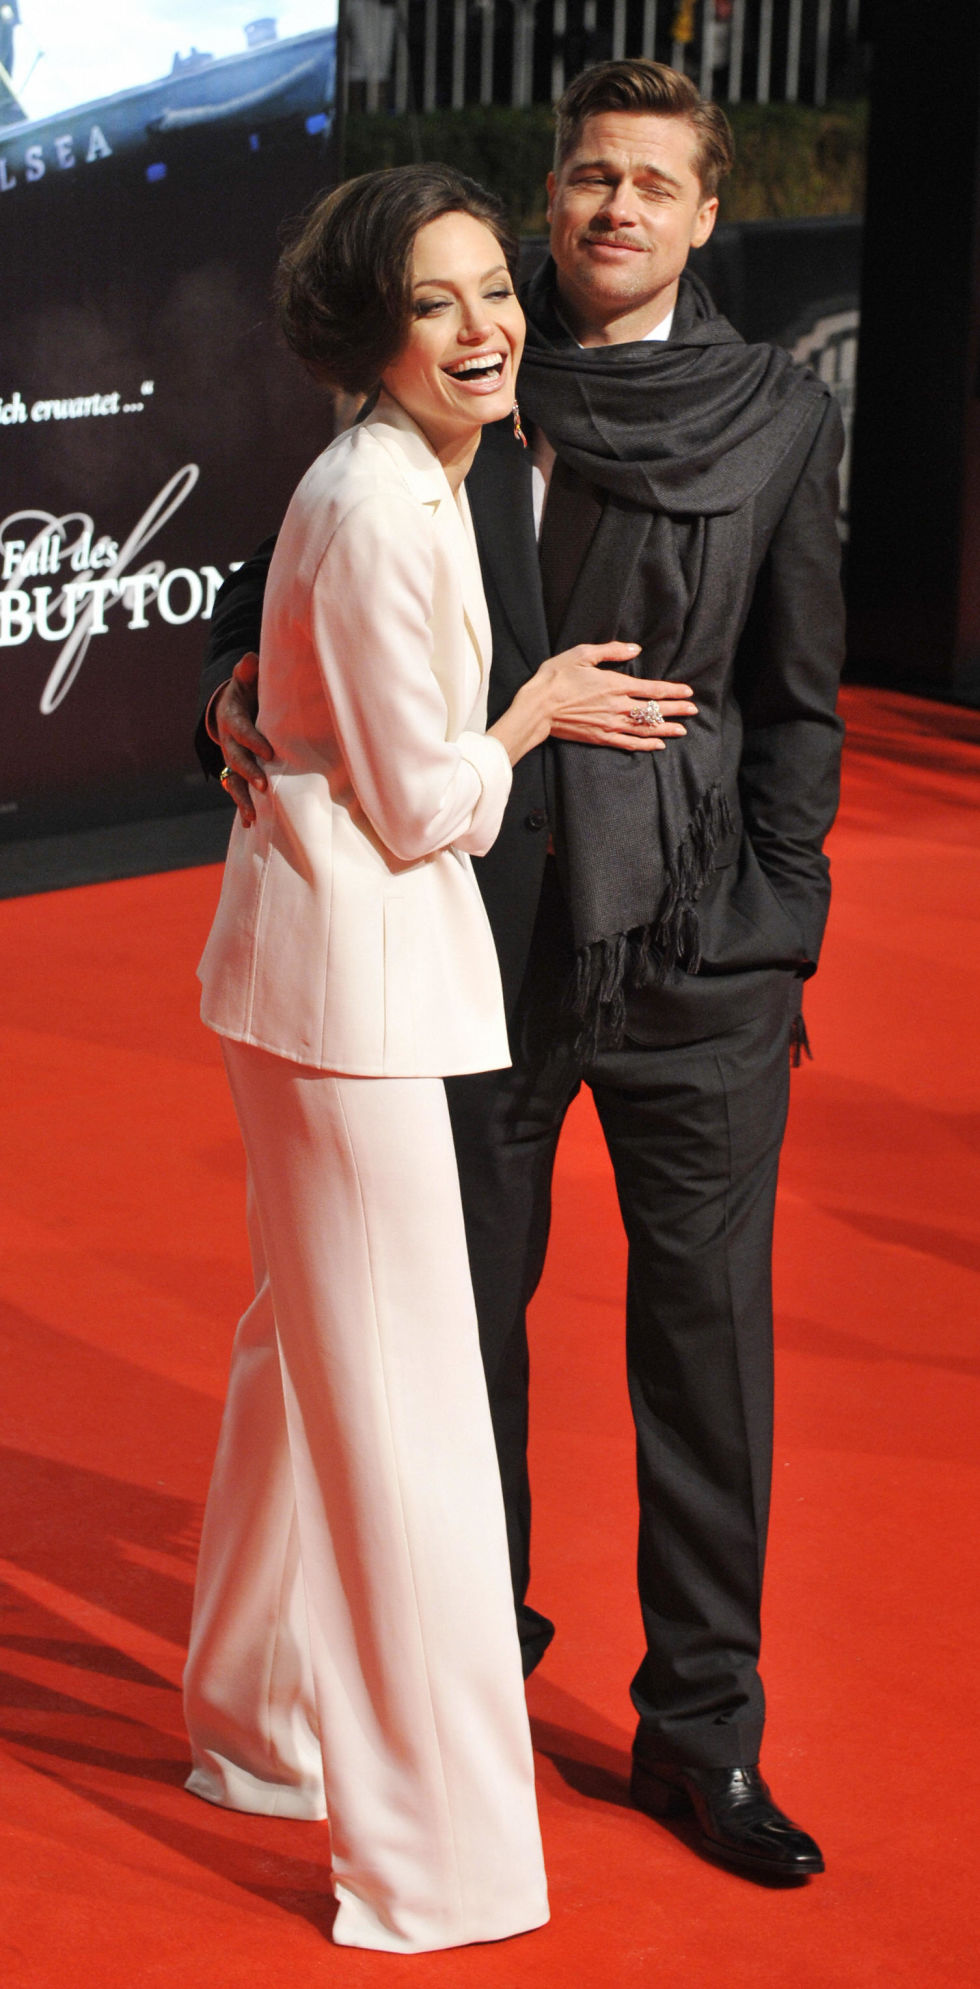 At the Berlin premiere of The Curious Case of Benjamin Button.